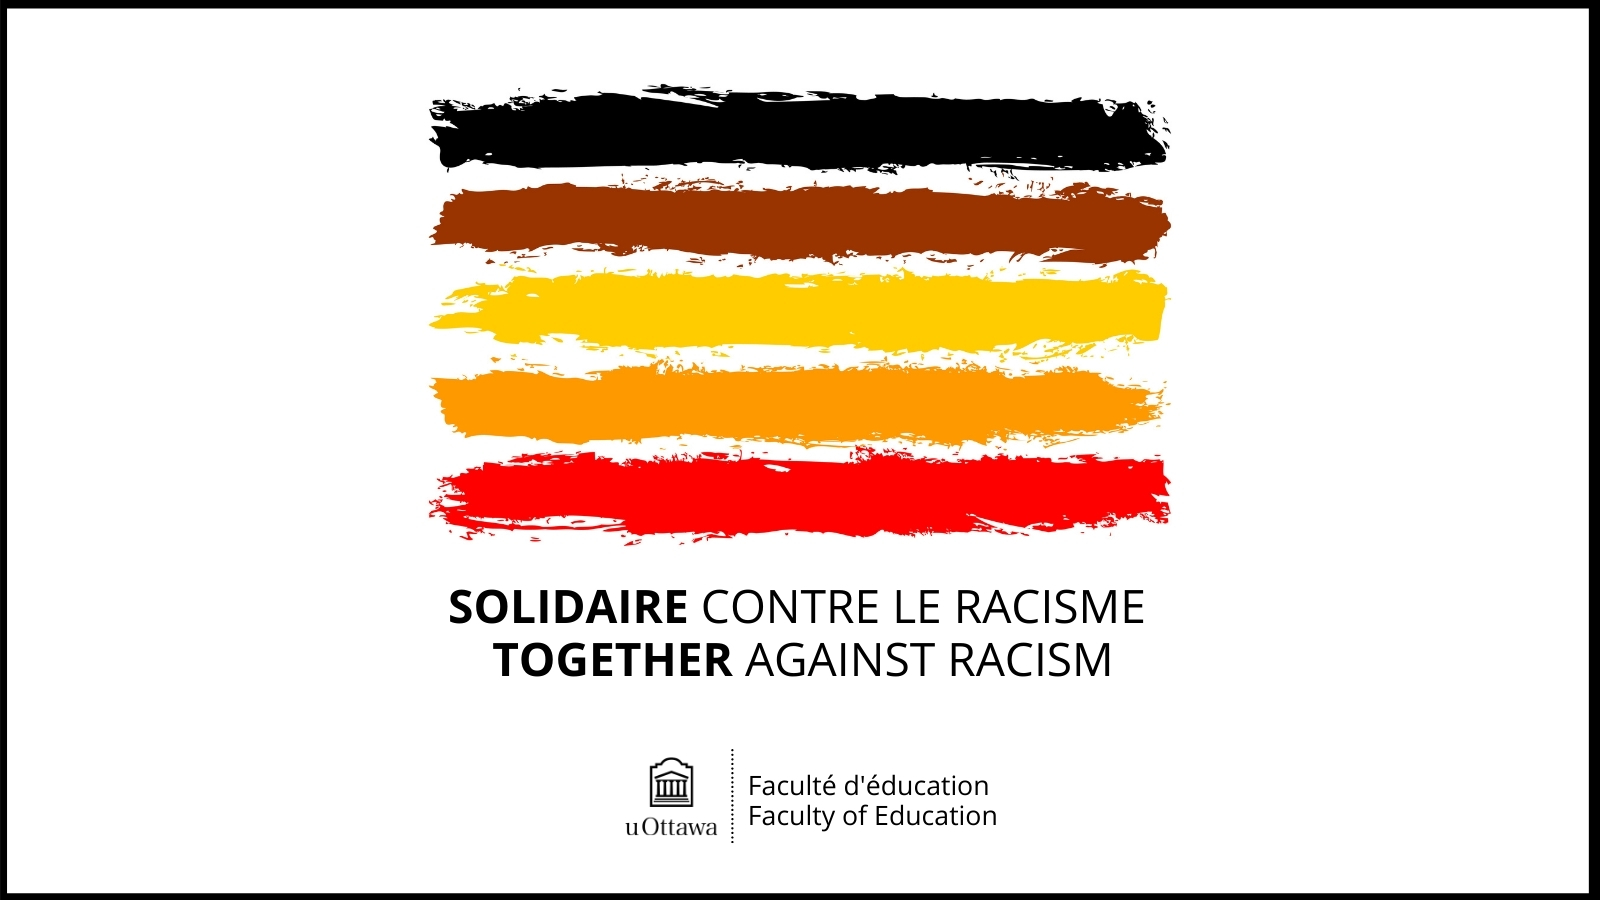 Together Against Racism, Faculty of Education, BIPOC paint brush strokes uOttawa logo